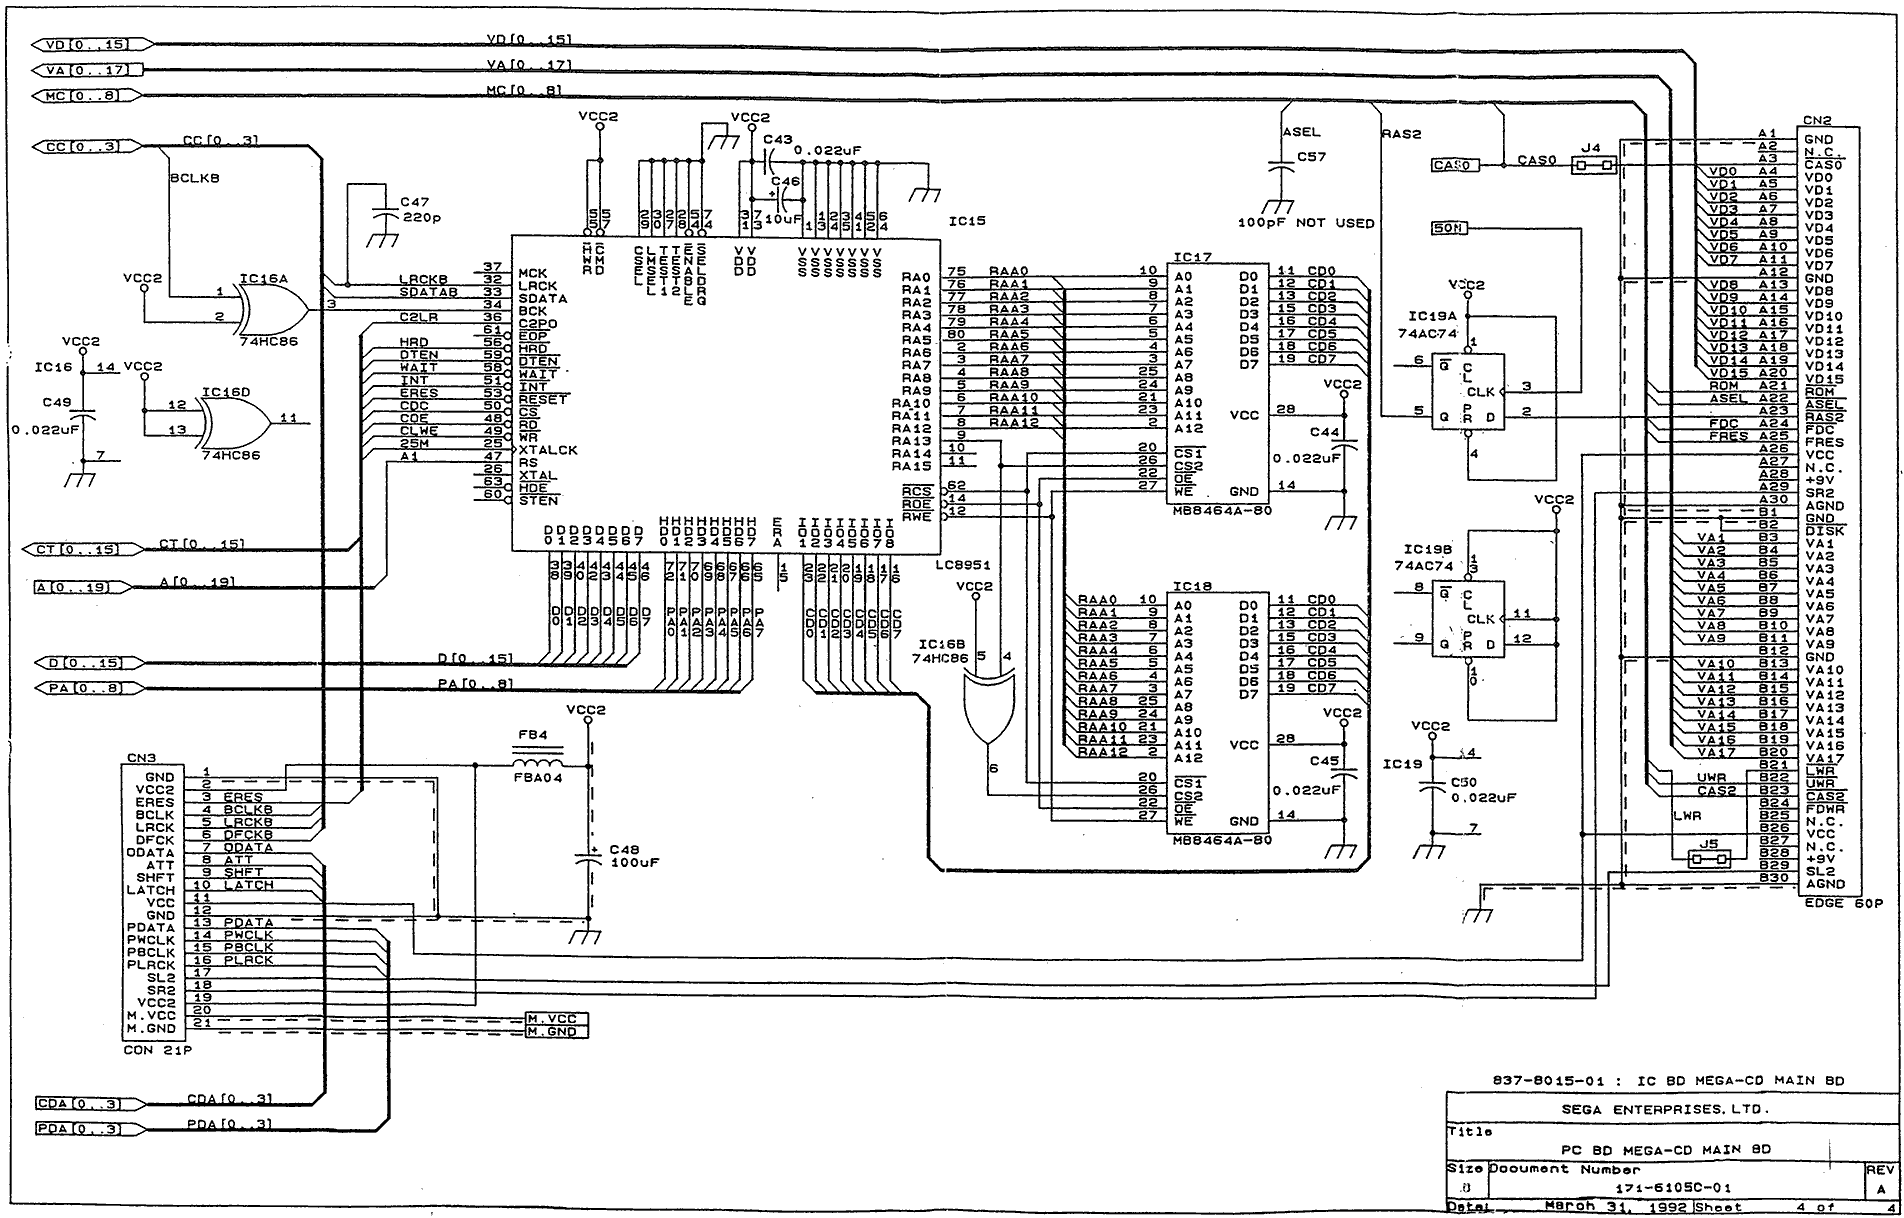 schematics:console_related_schematics [NFG Games + GameSX]